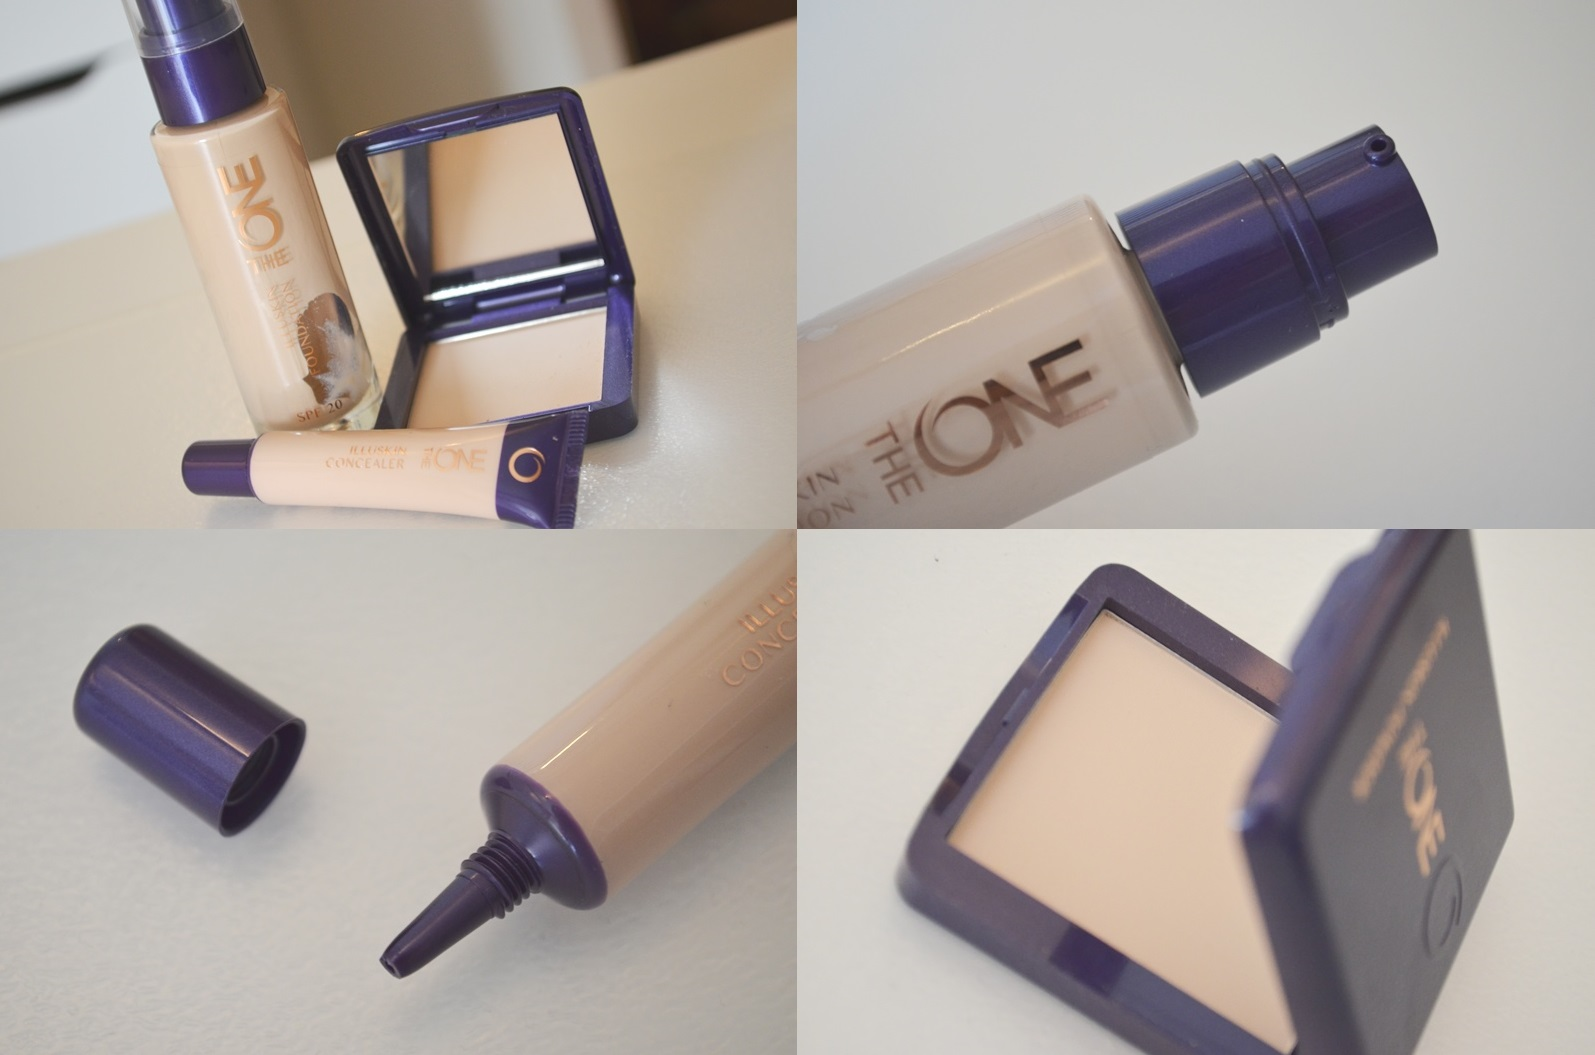 Compilatie Gezichtsproducten - Oriflame: The One Make-up (Mega) Review